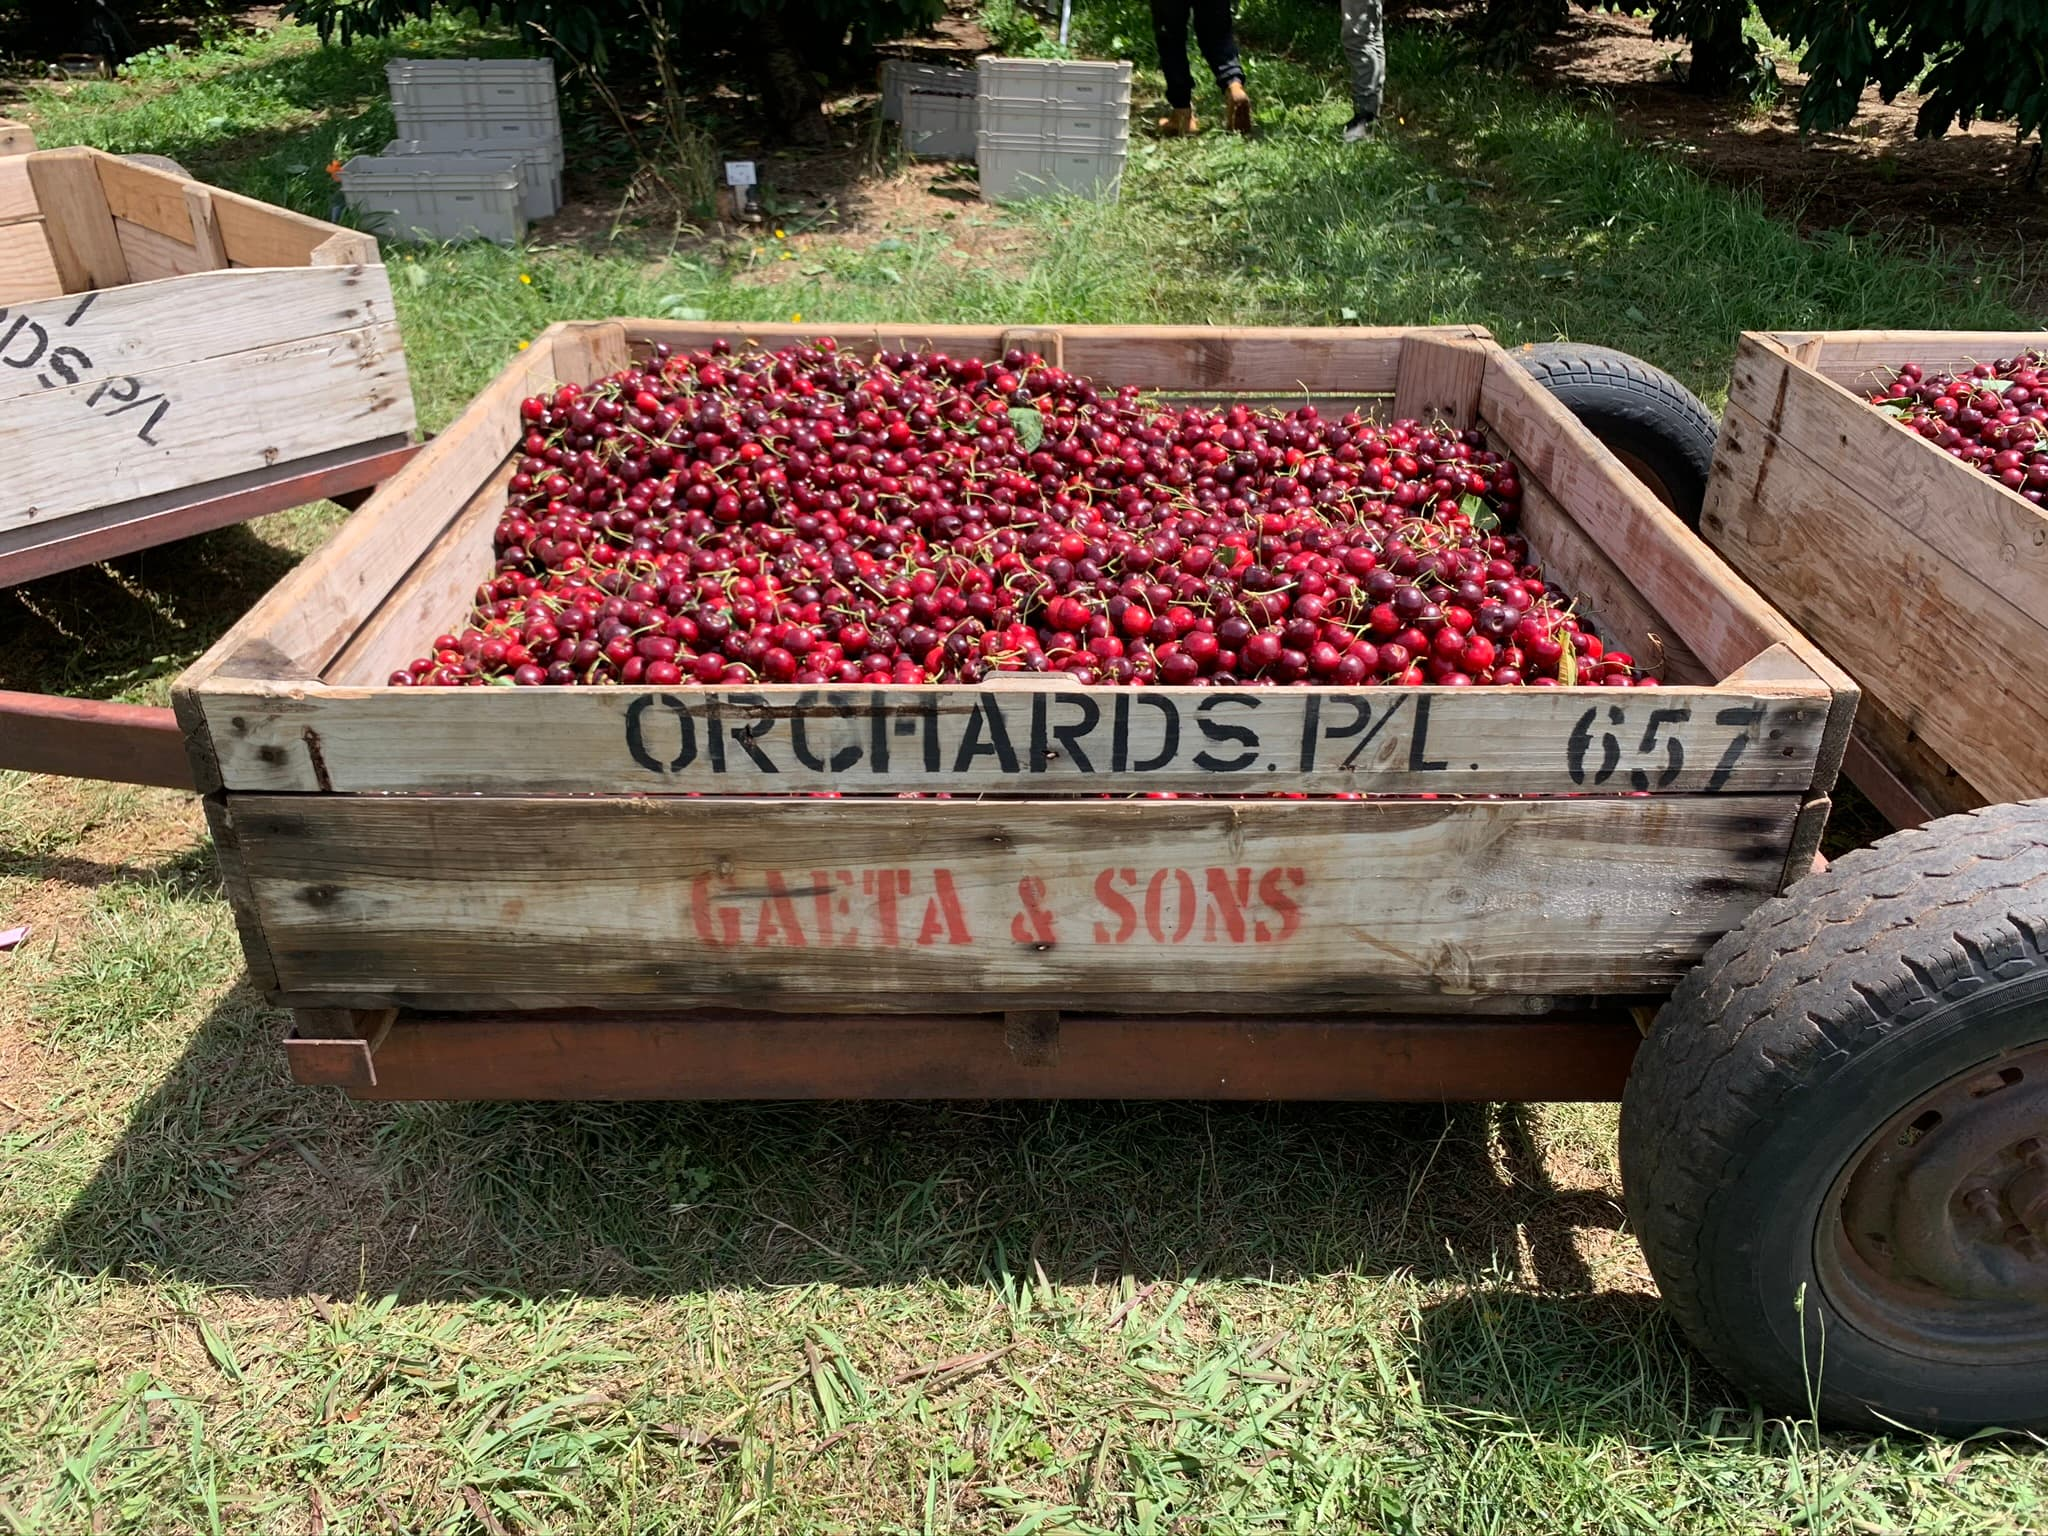 cherries in a box on an orchard